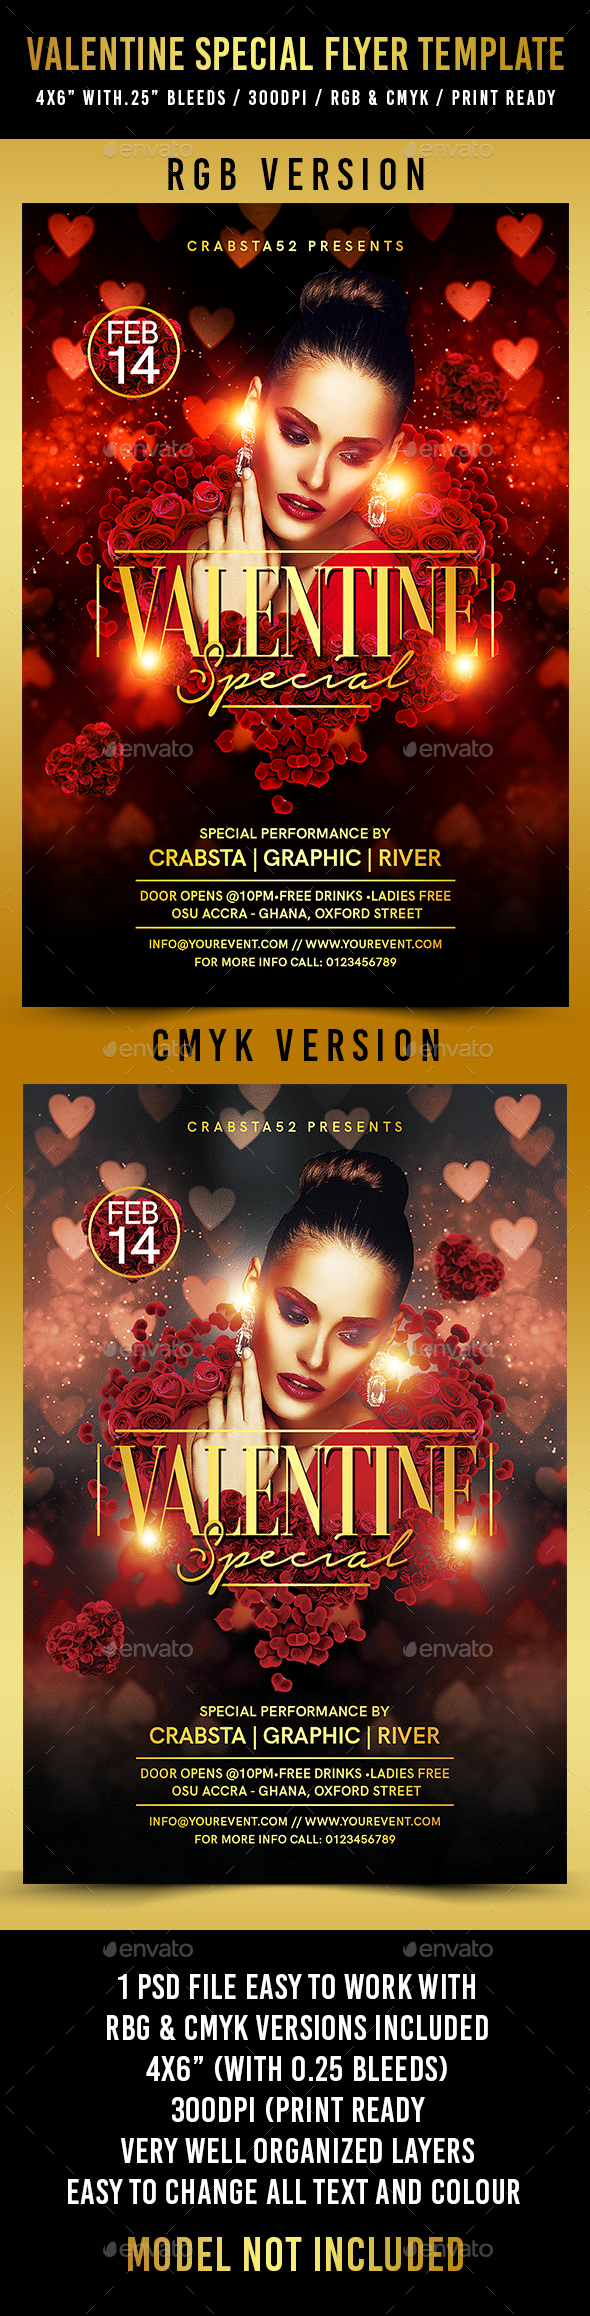 Valentine Special Flyer Template - Flyers Print Templates